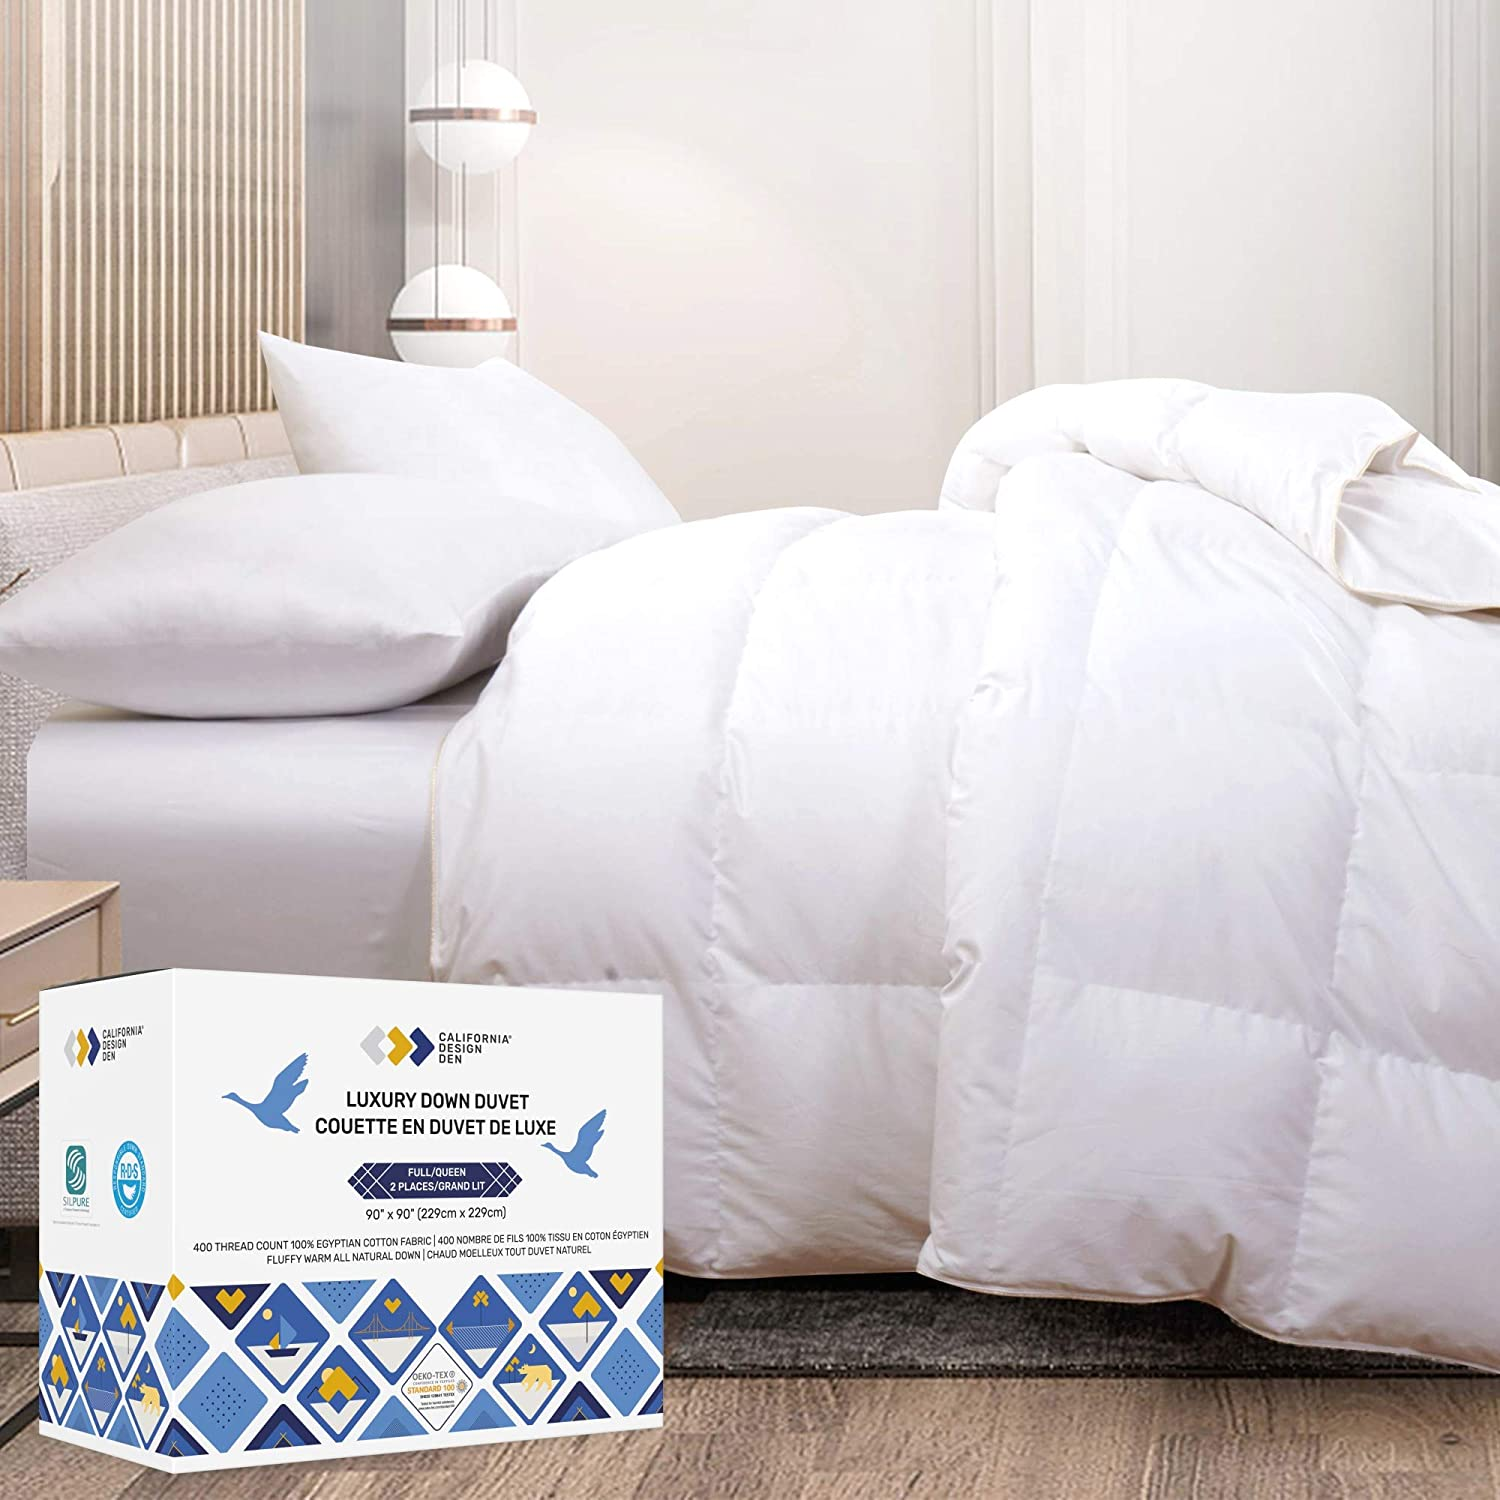 All-Season White Down Comforter - Super Soft & Fluffy, Breathable 100% Pure Egyptian Cotton Shell, 54 OZ Fill Weight, 650+ Fill Power Medium Weight, Premium Quality Washable Duvet Insert - King Size